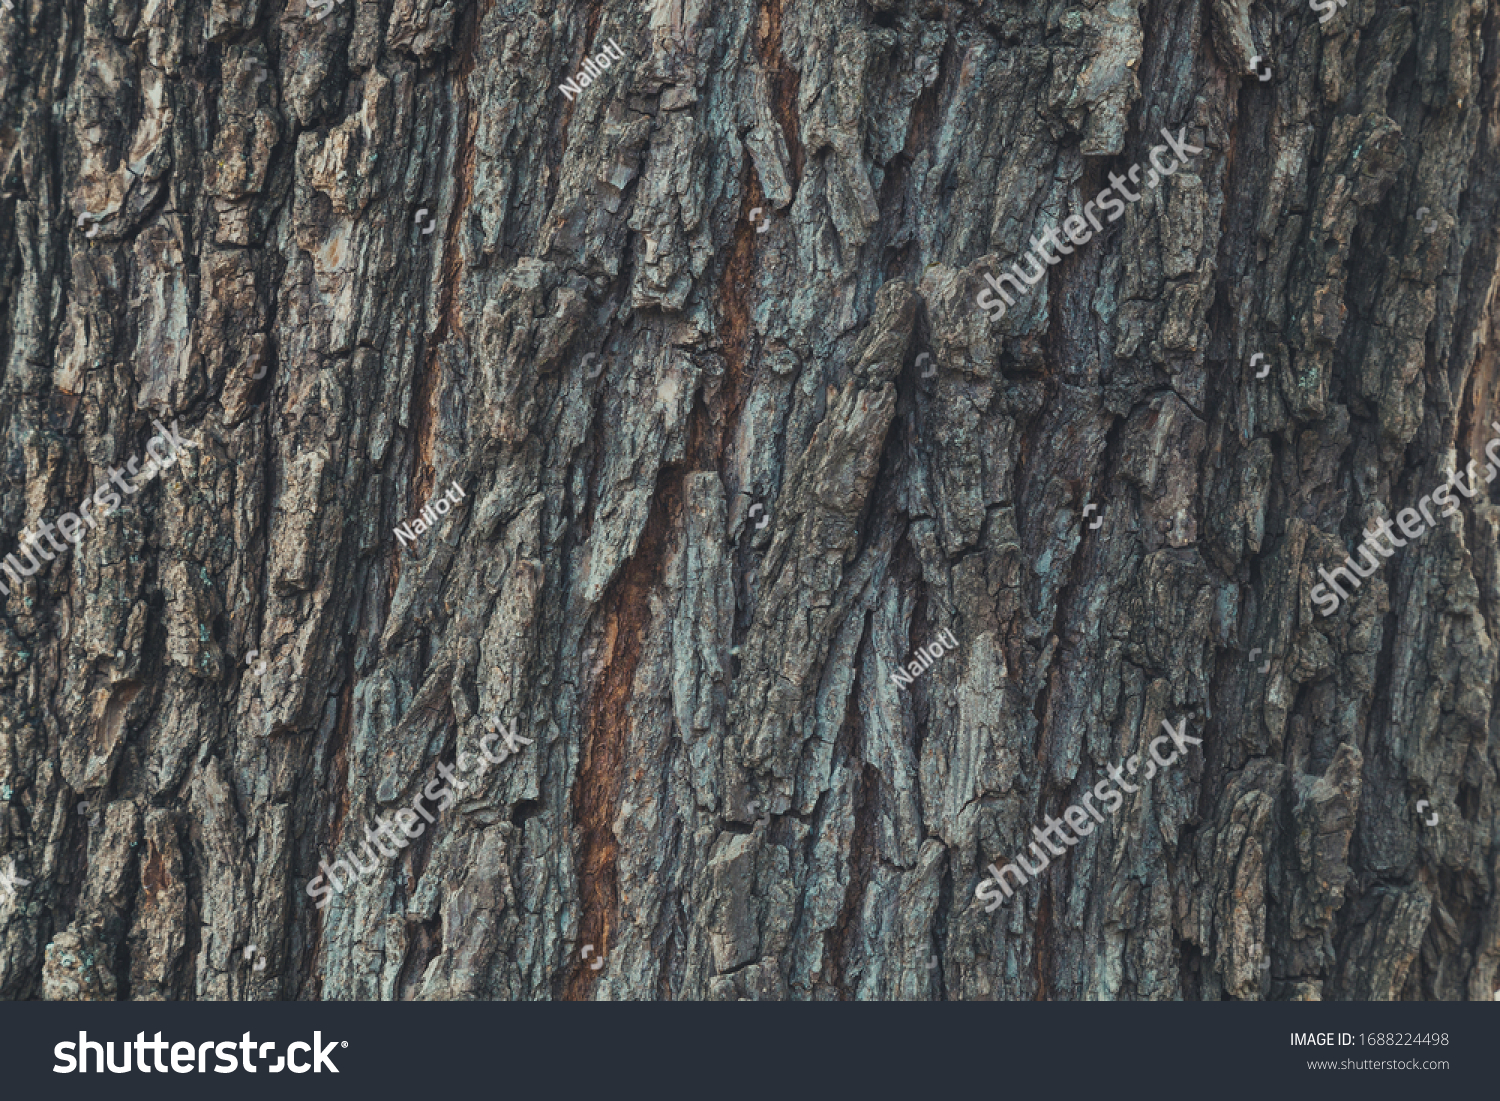 Old wood background, grey,,virtual background, video conference background #1688224498